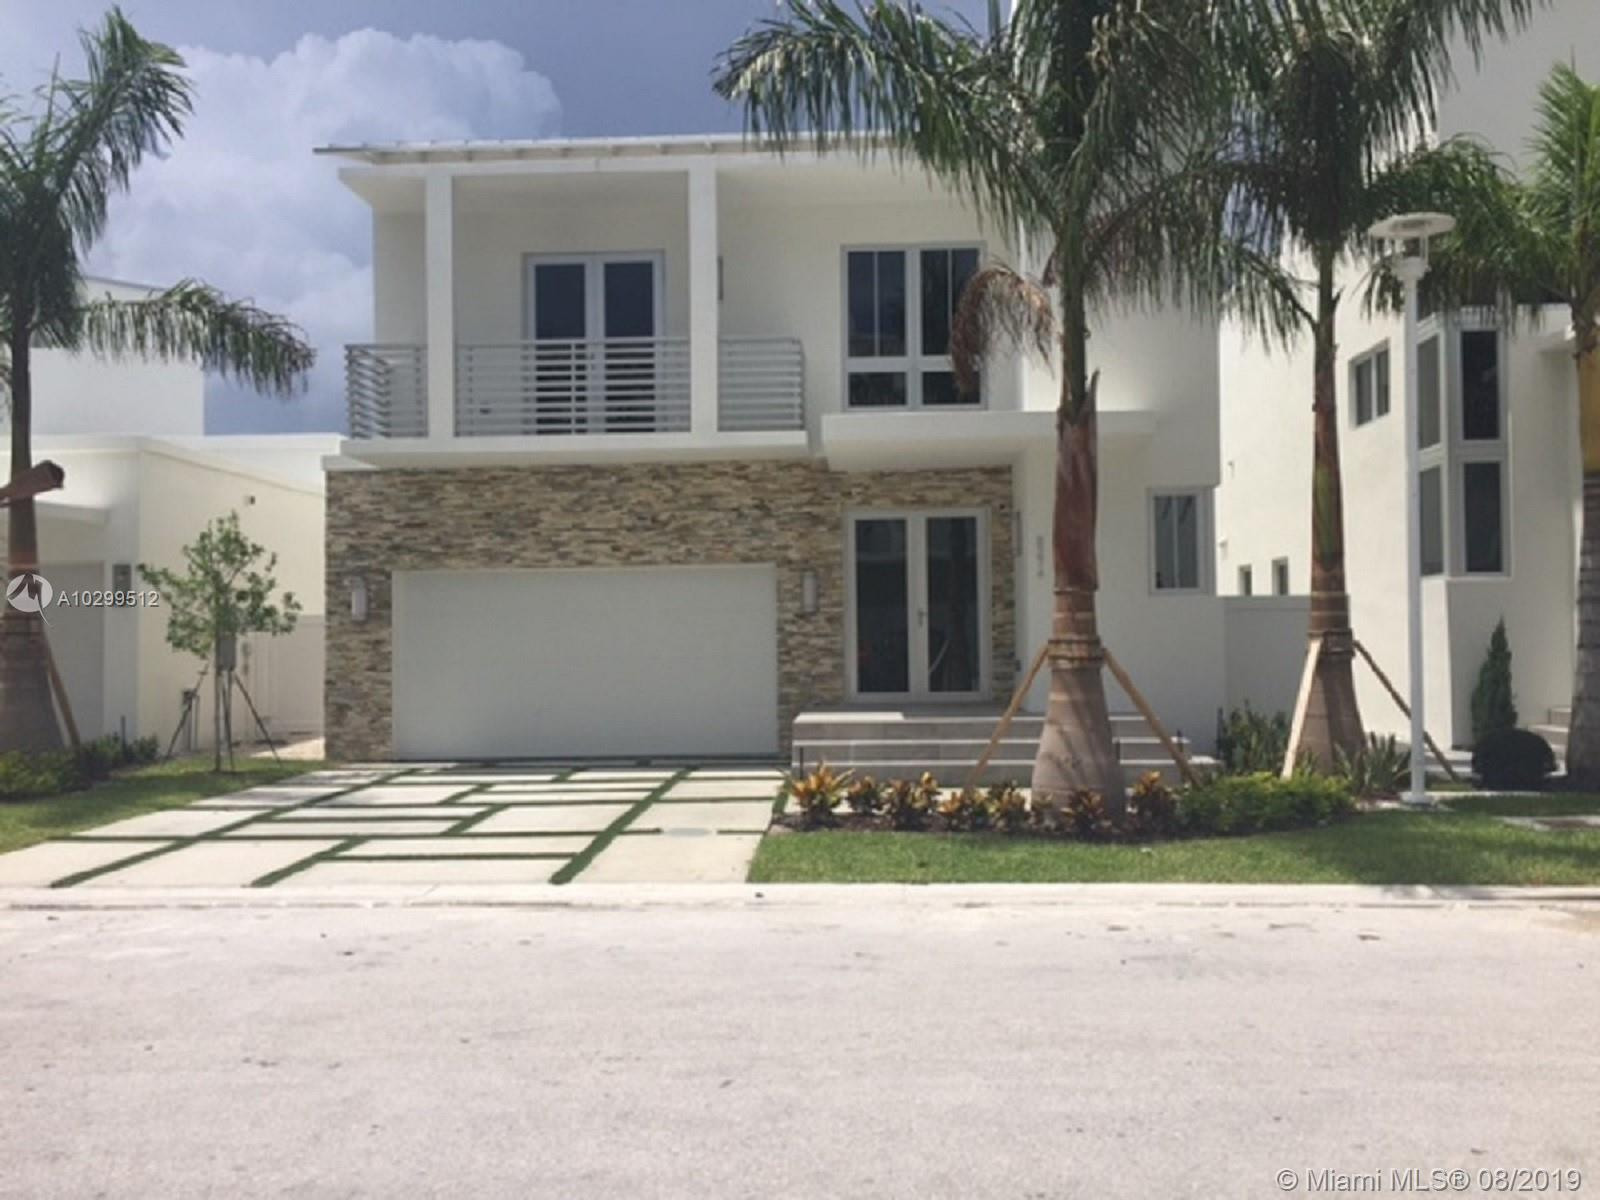 8276 NW 34th St, Doral, Florida